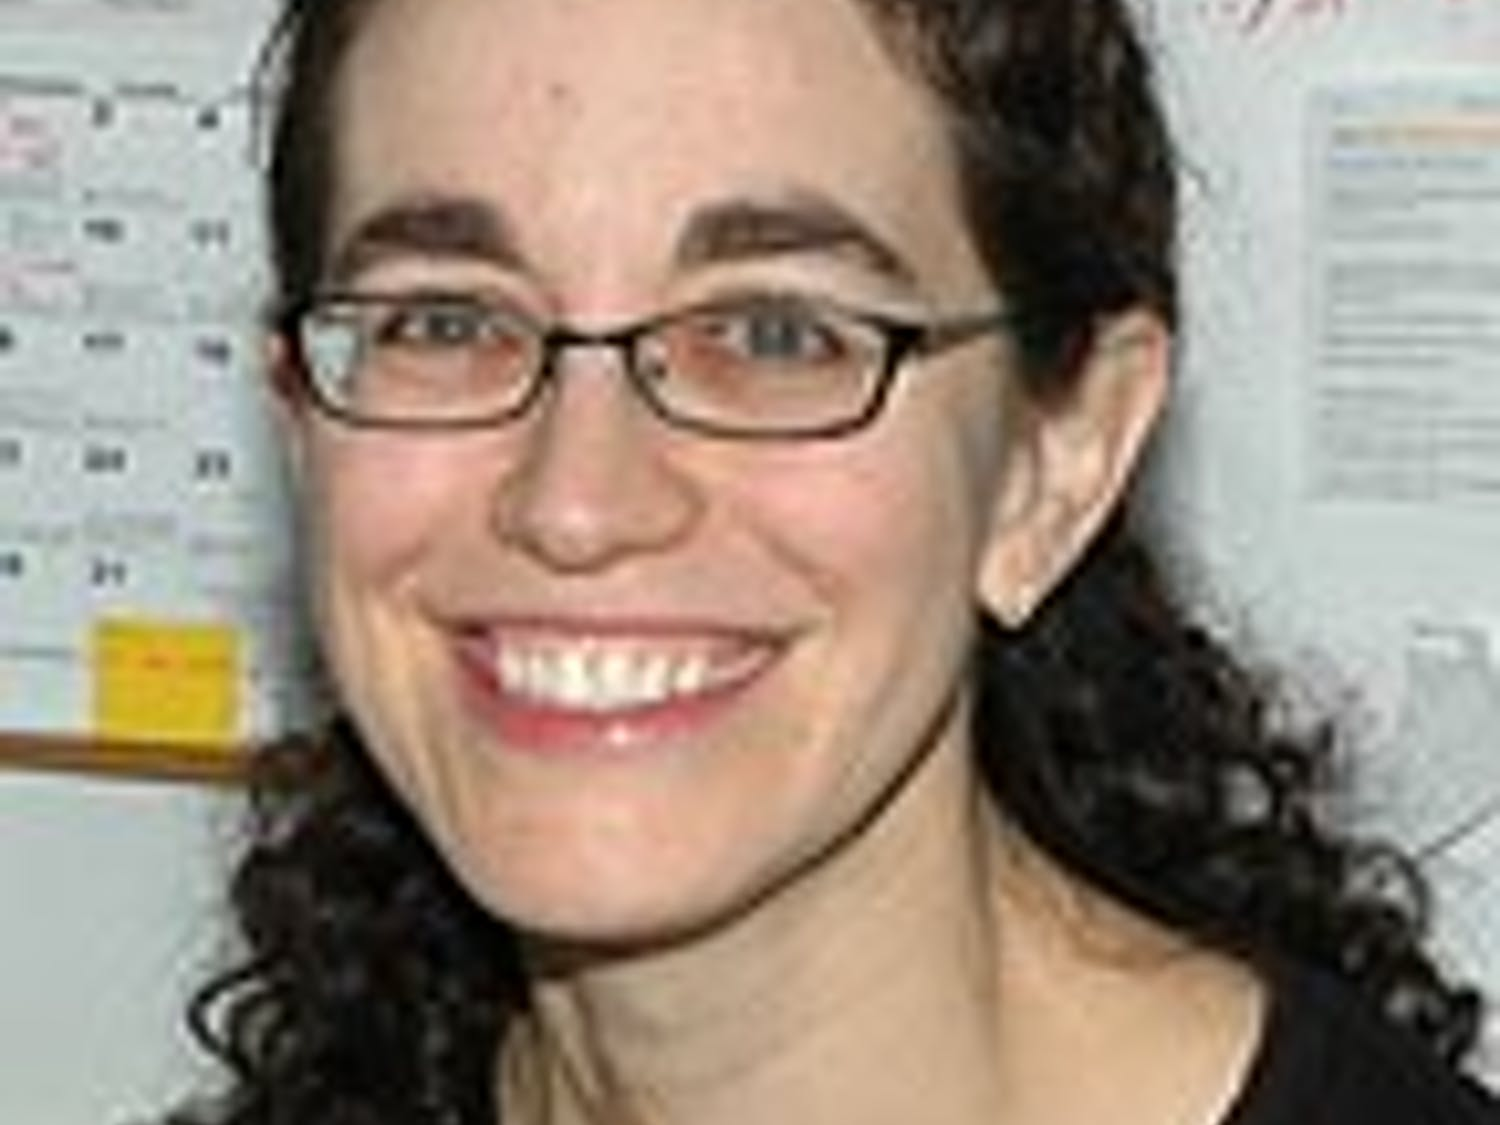 Dr. Tanya Schlam was the lead researcher on the UW Center for Tobacco Research and Intervention study.